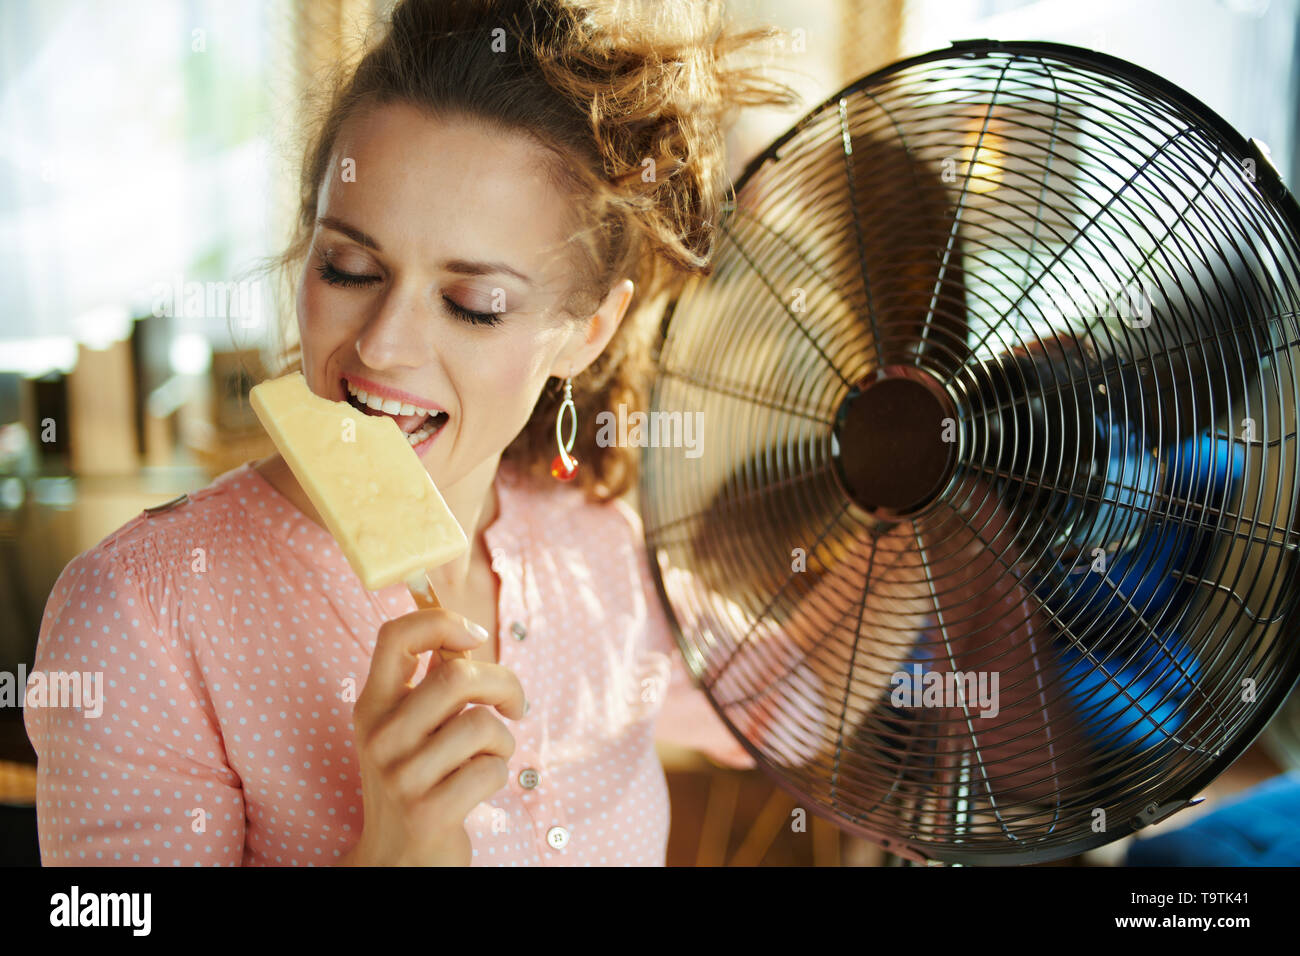 happy stylish woman in the modern house in sunny hot summer day using electric metallic fan while eating ice cream. - Stock Image